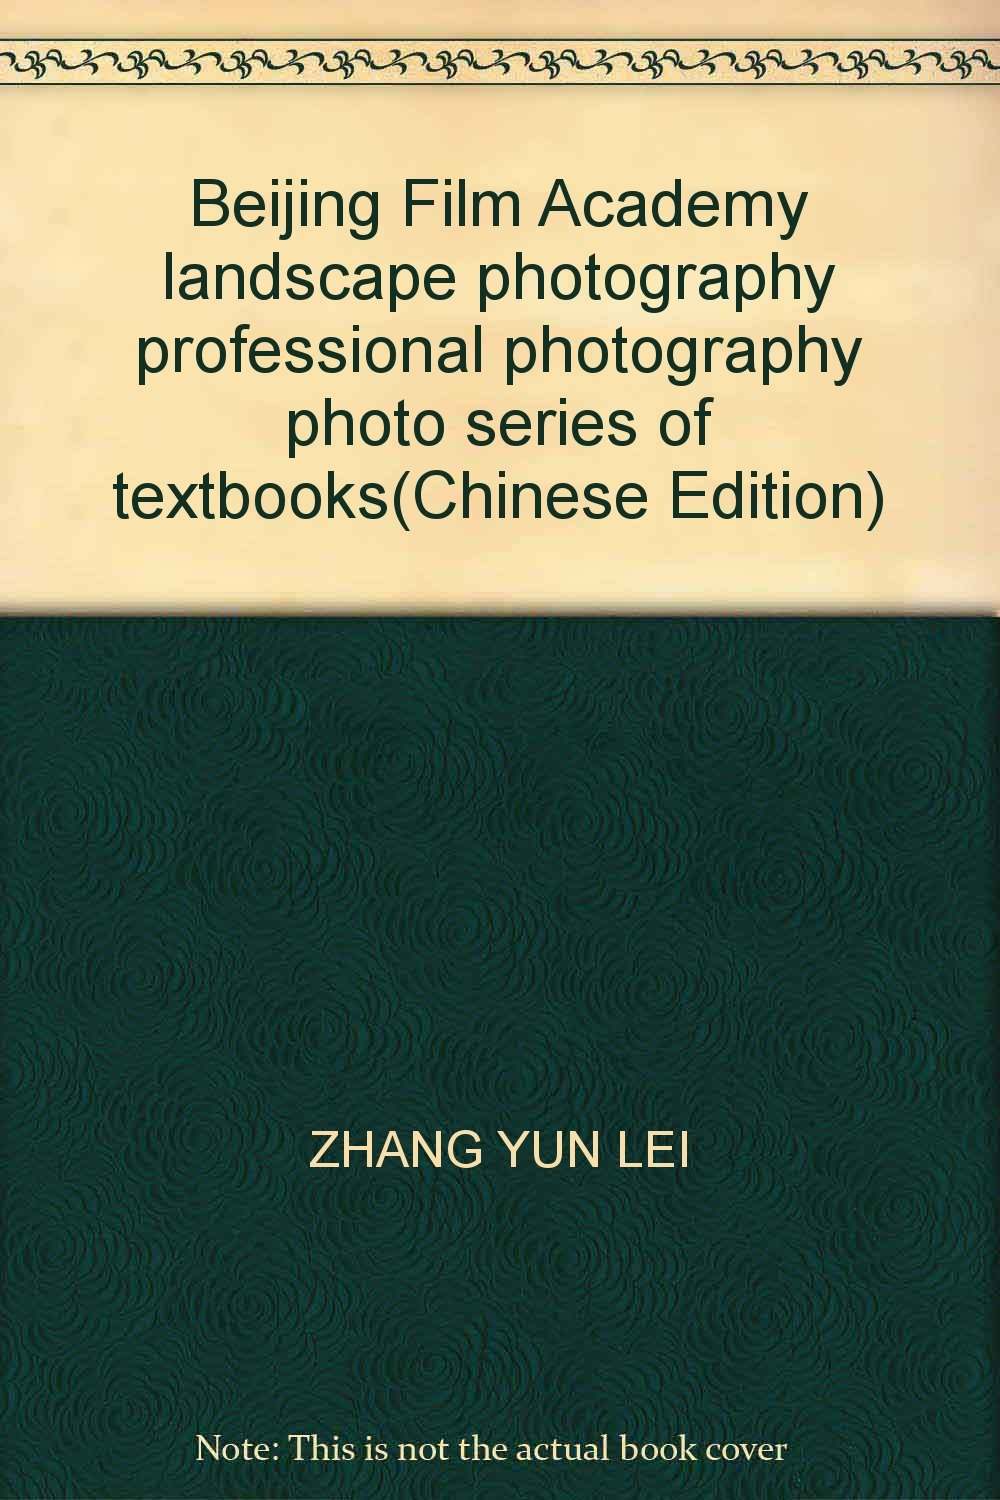 Beijing Film Academy landscape photography professional photography photo series of textbooks(Chinese Edition) pdf